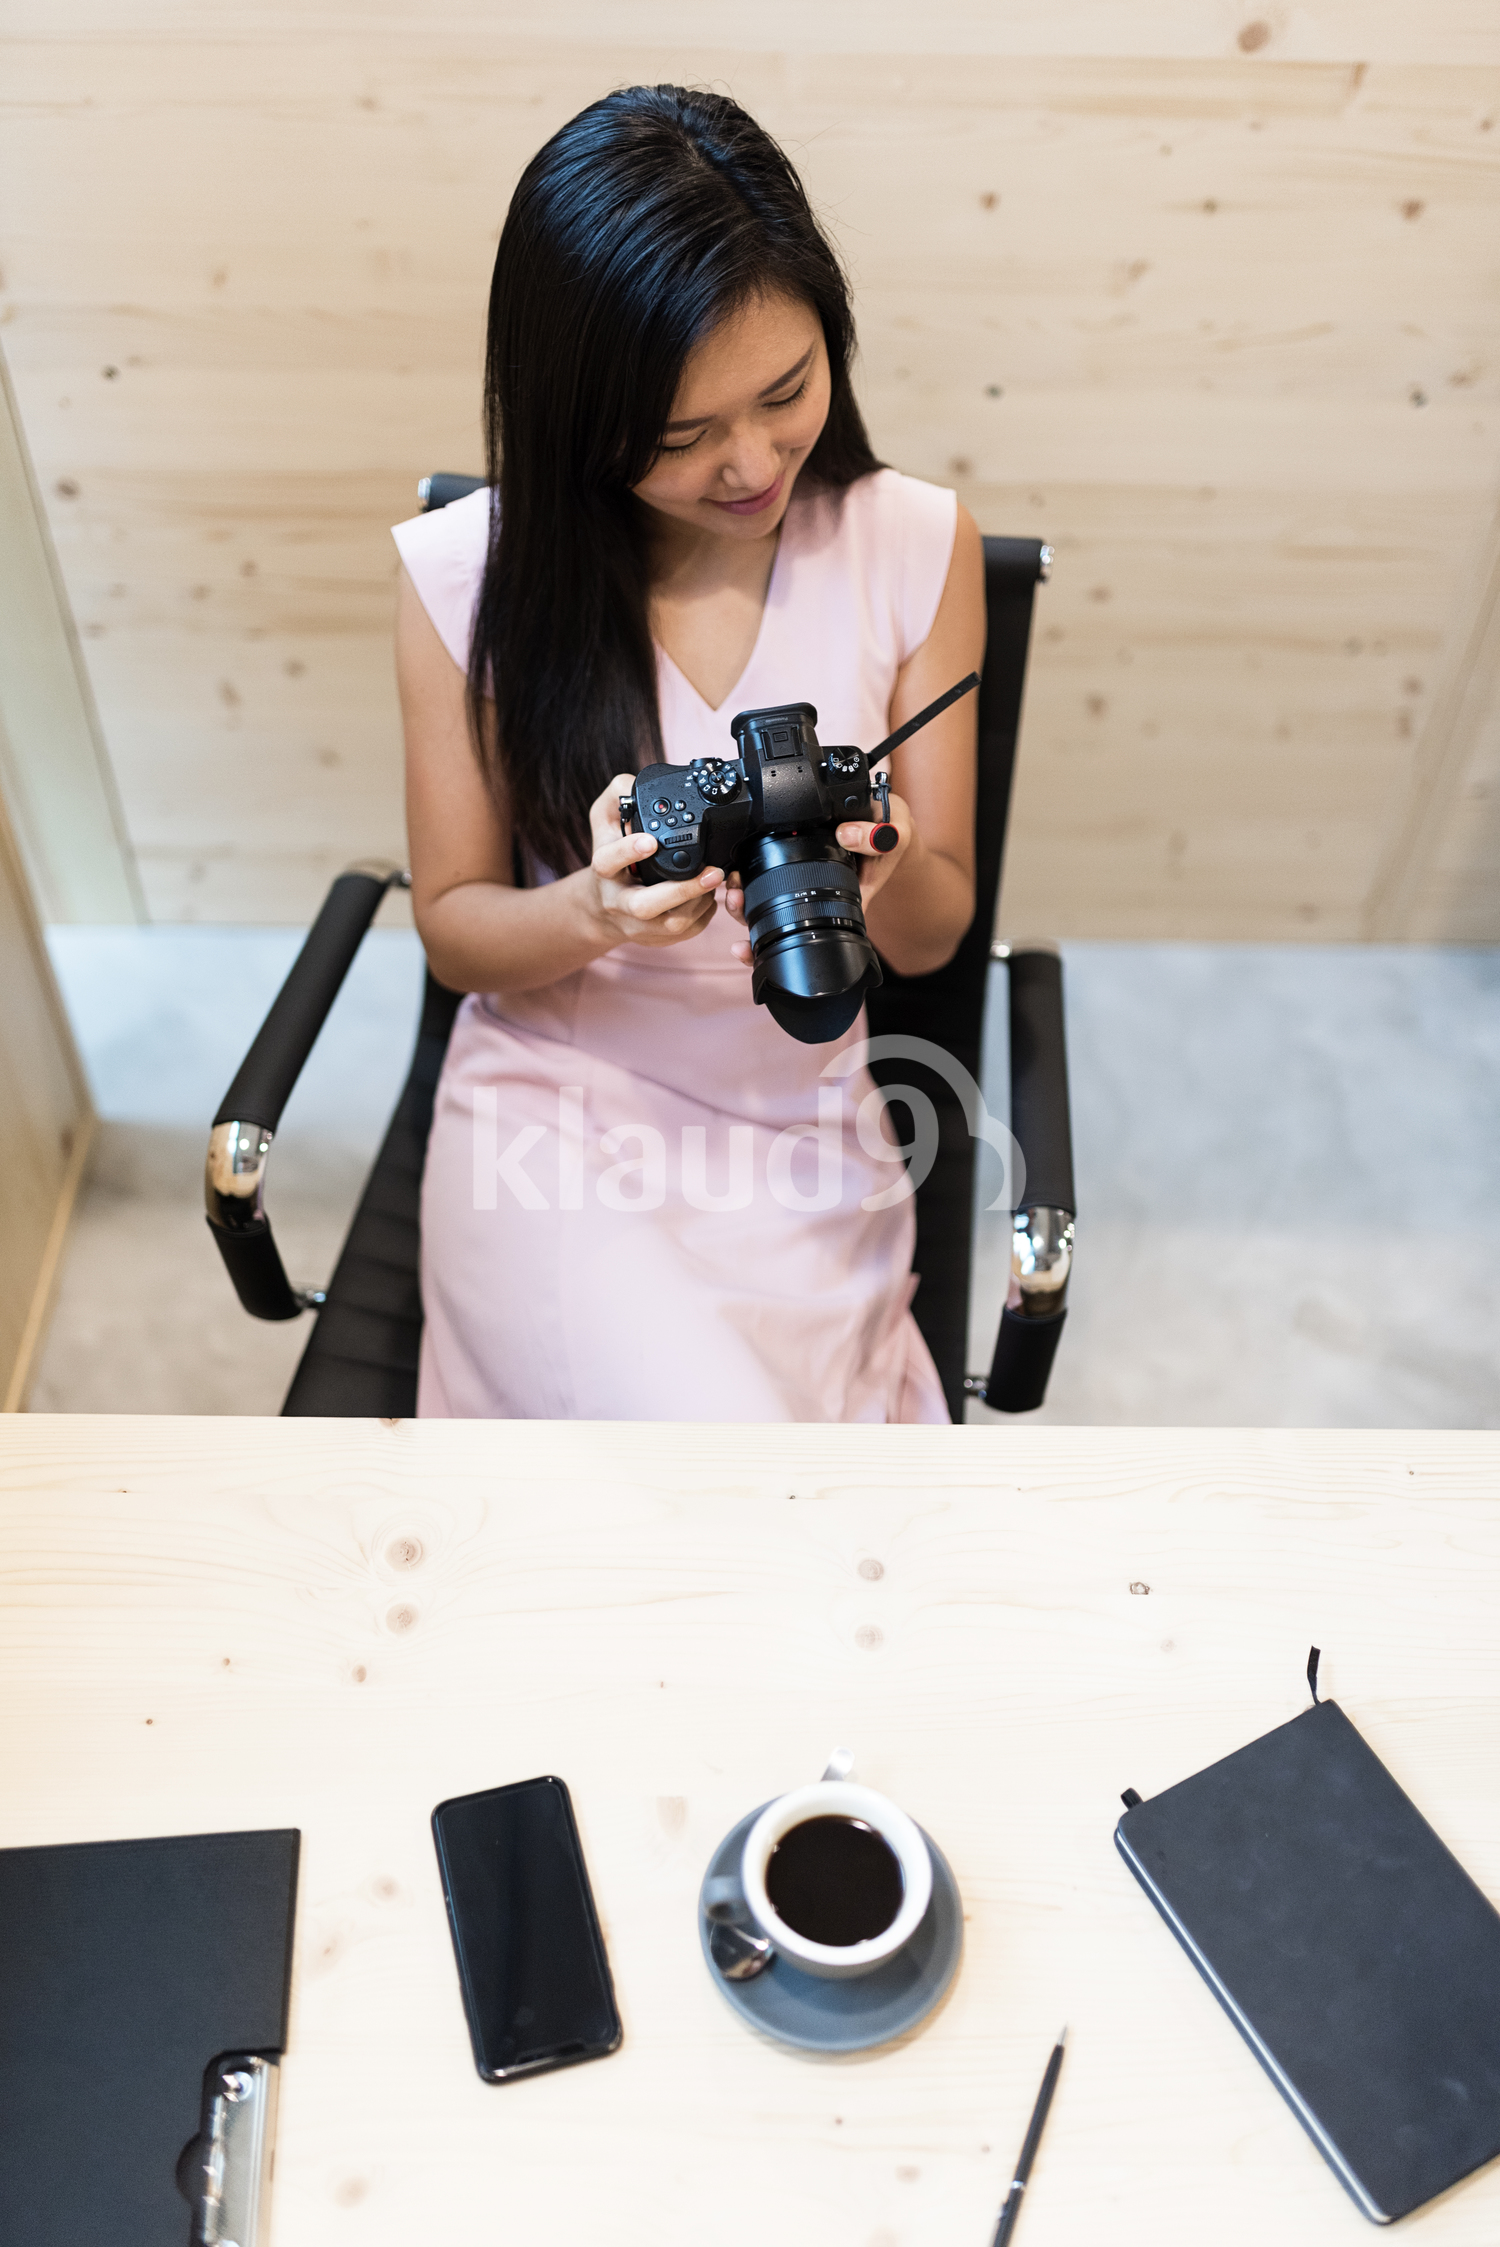 Pretty woman at her work space holding a camera